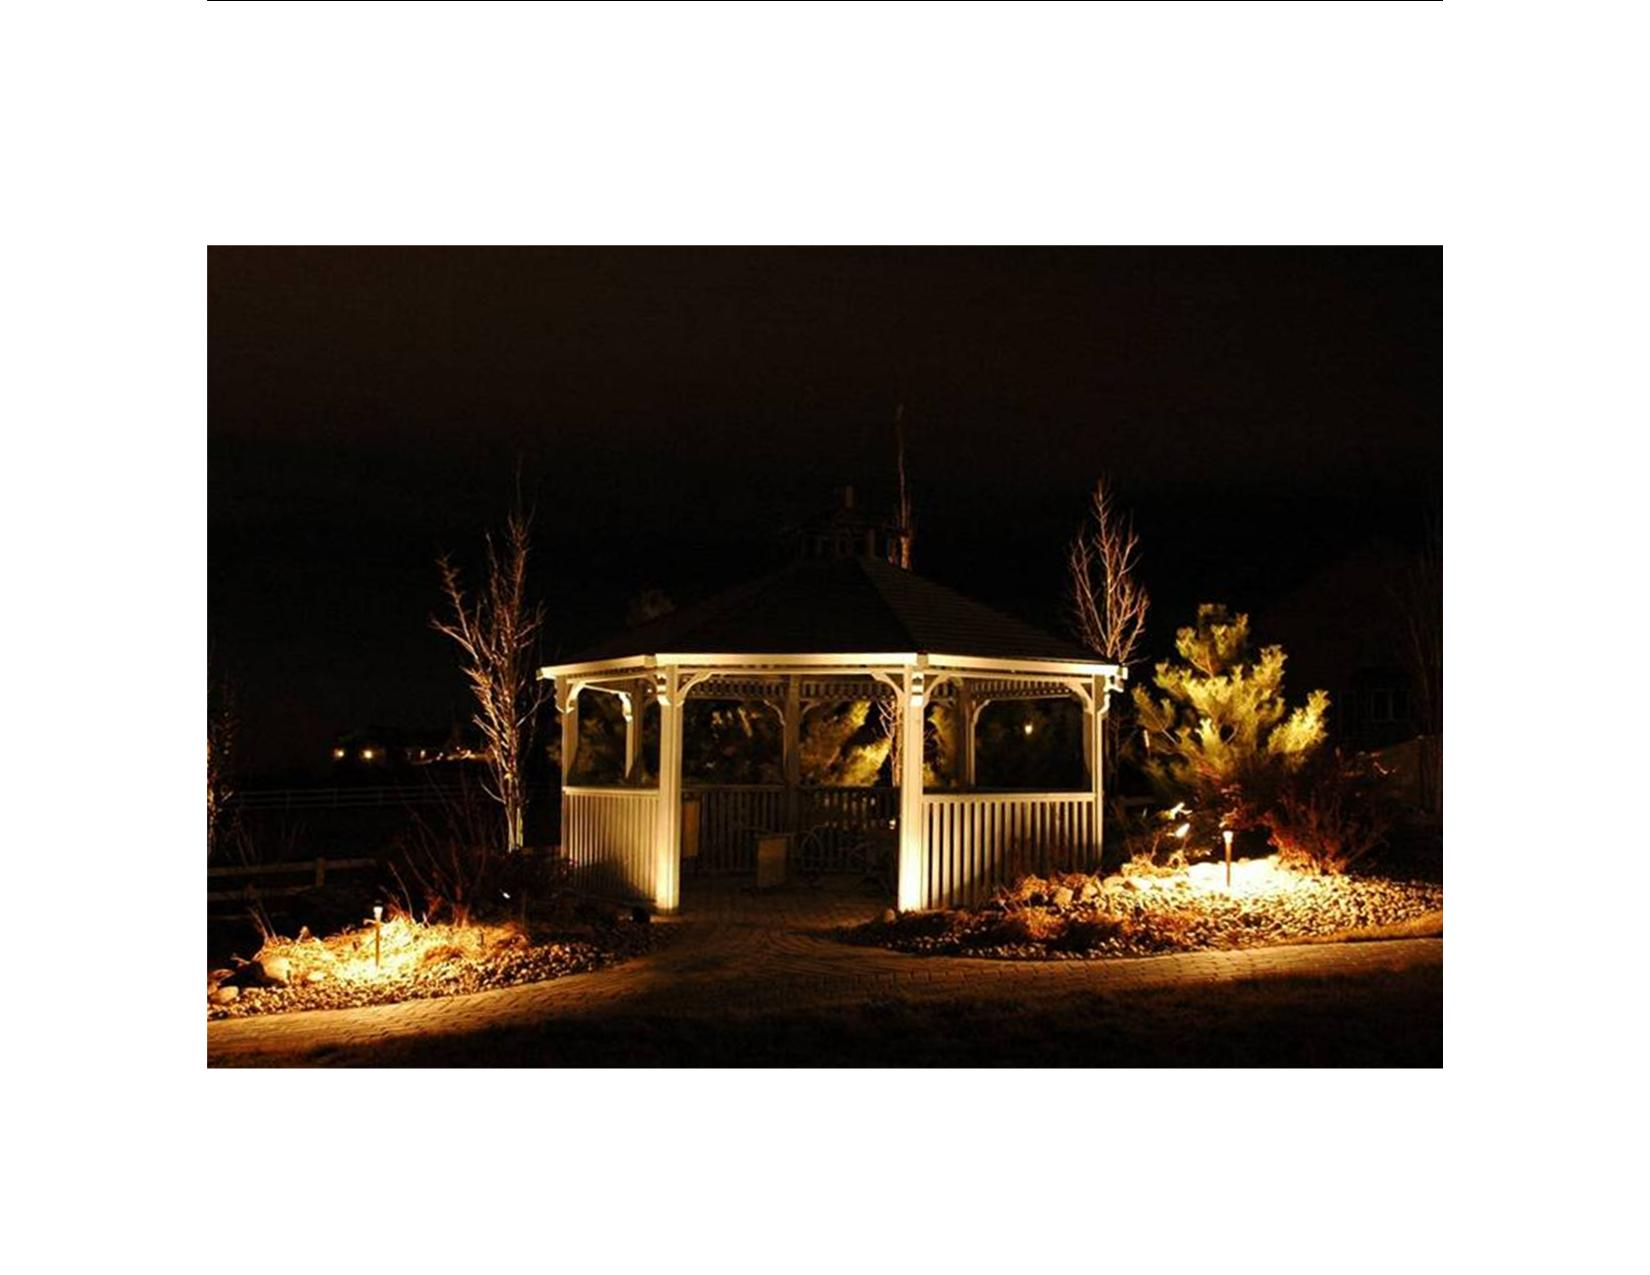 Todd Creek Farms - Brighton, CO gazebo lighting. Gazebos provide wonderful outdoor living spaces that are transformed after dark with accent lighting. At this site in Todd Creek Farms, the site for the gazebo was made level with a terraced rock wall and it is illuminated by a series of Outdoor Lighting Perspectives' (OLP) 20W quartz halogen BB7F copper path/wall lights. This truly unique fixture is really two fixtures in one - the front half is a flood light that provides diffuse illumination on the wall, and the other half is a regular path light for illuminating the walkway. For the steps, the 20W quartz halogen BB7 copper path lights were used. Both the BB7 and BB7F fixtures are now also available in a 7.2W LED version. The gazebo and trees were up-lighted with OLP's BB3 well lights to complete the nighttime scene.